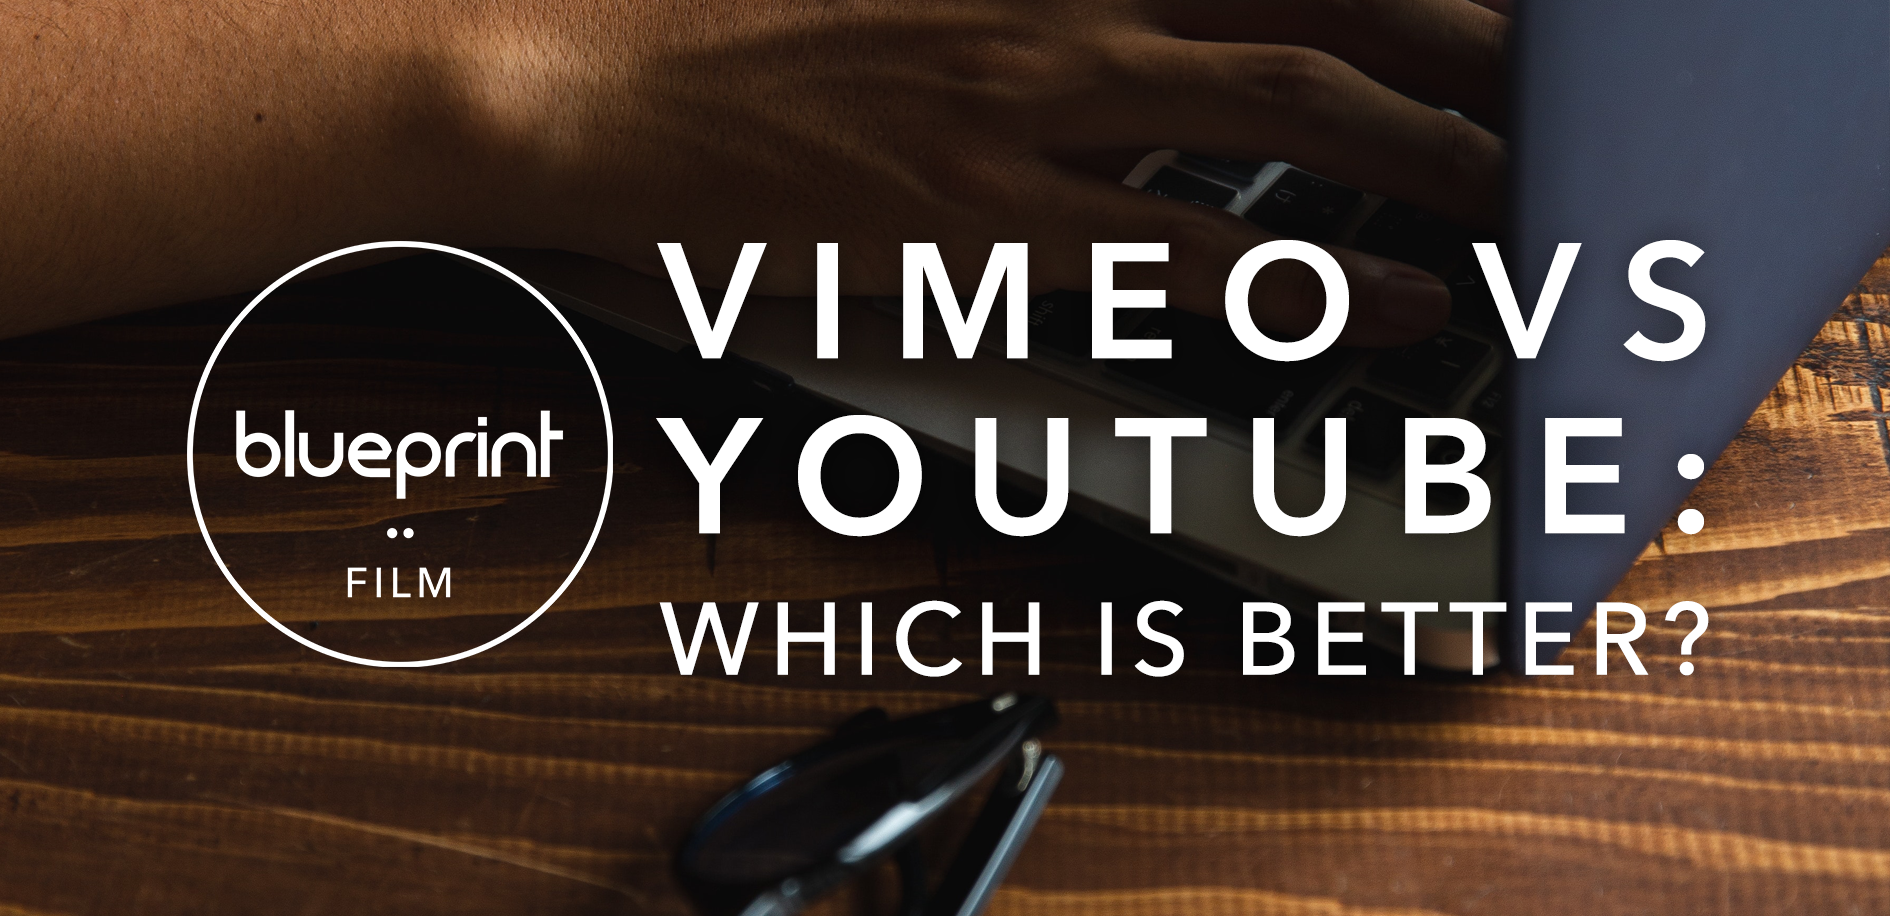 Vimeo VS YouTube: Which Is Better? by Blueprint Film